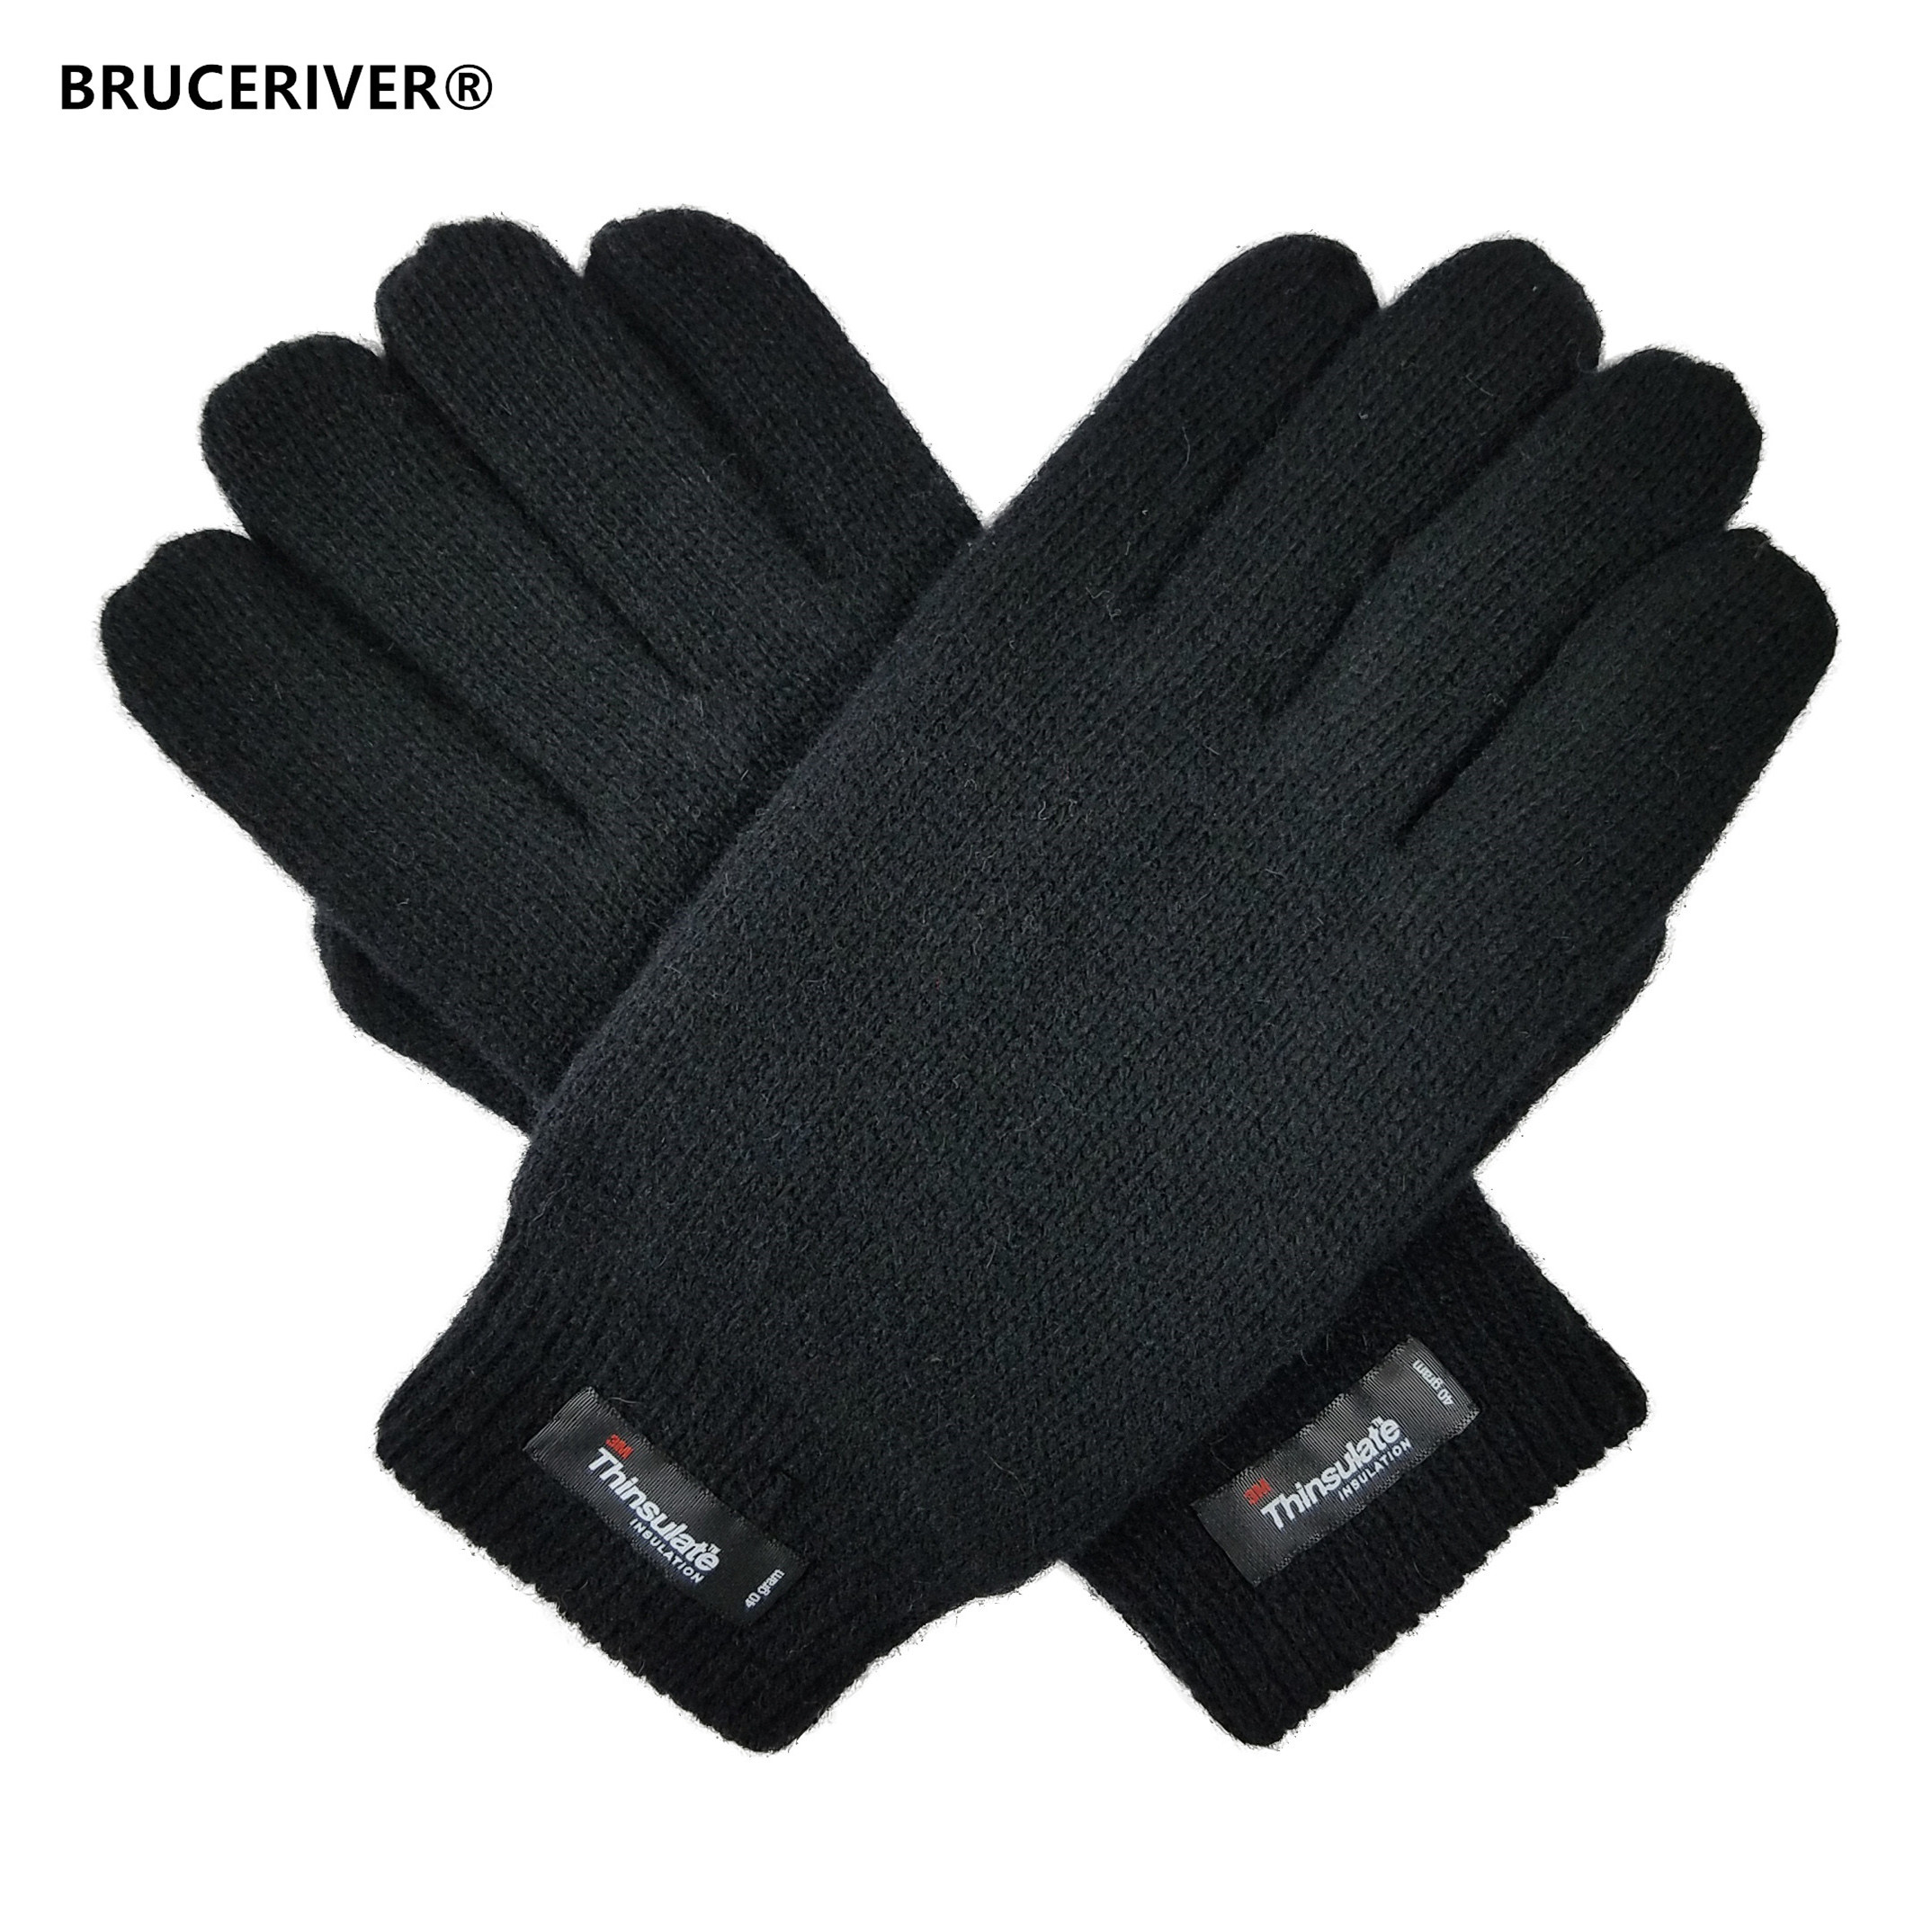 Bruceriver Men's Pure Wool Knitted Gloves with Thinsulate Lining and Elastic Rib Cuff title=